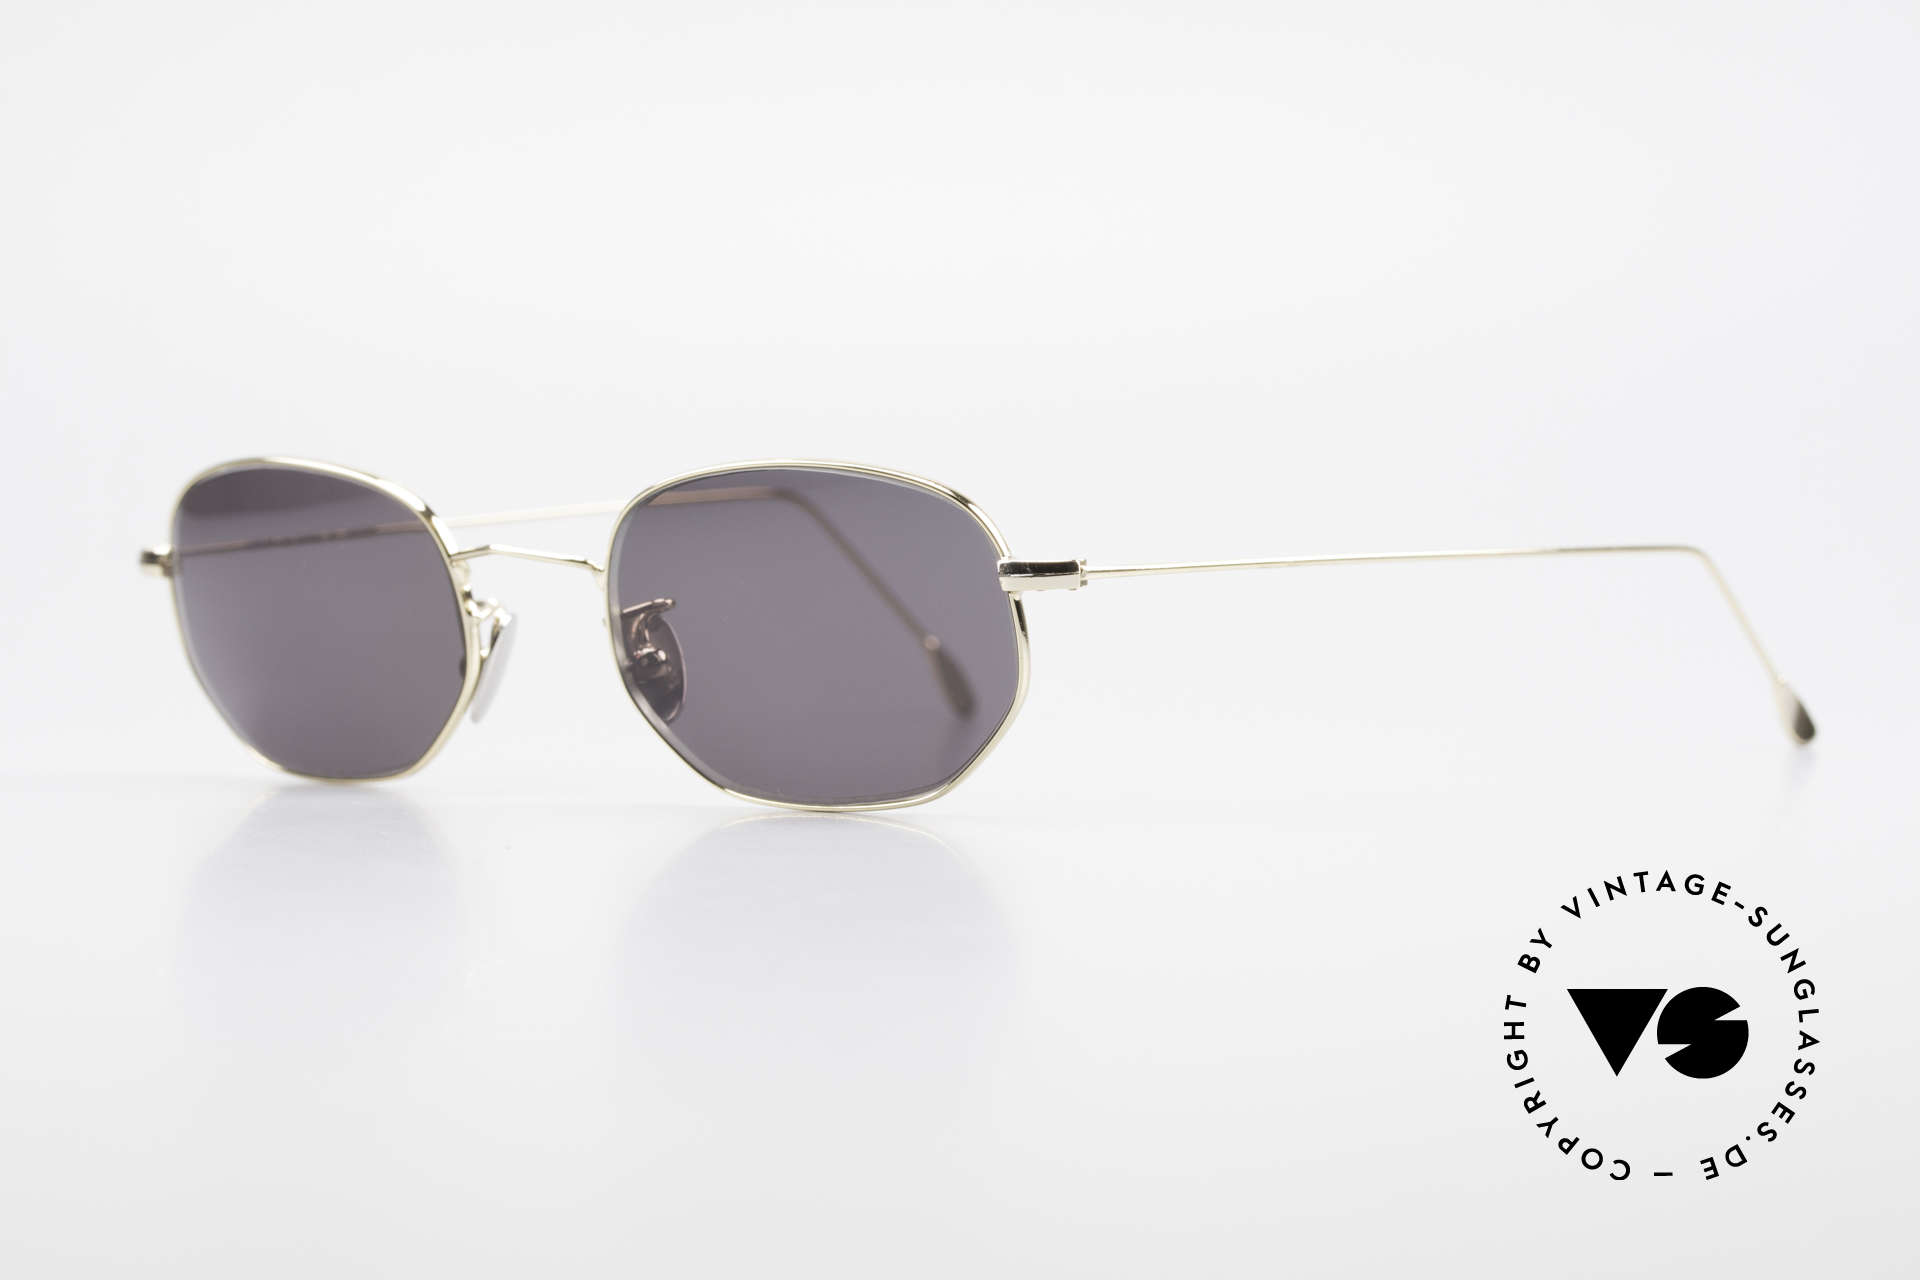 Cutler And Gross 0370 Classic Designer Sunglasses, stylish & distinctive in absence of an ostentatious logo, Made for Men and Women